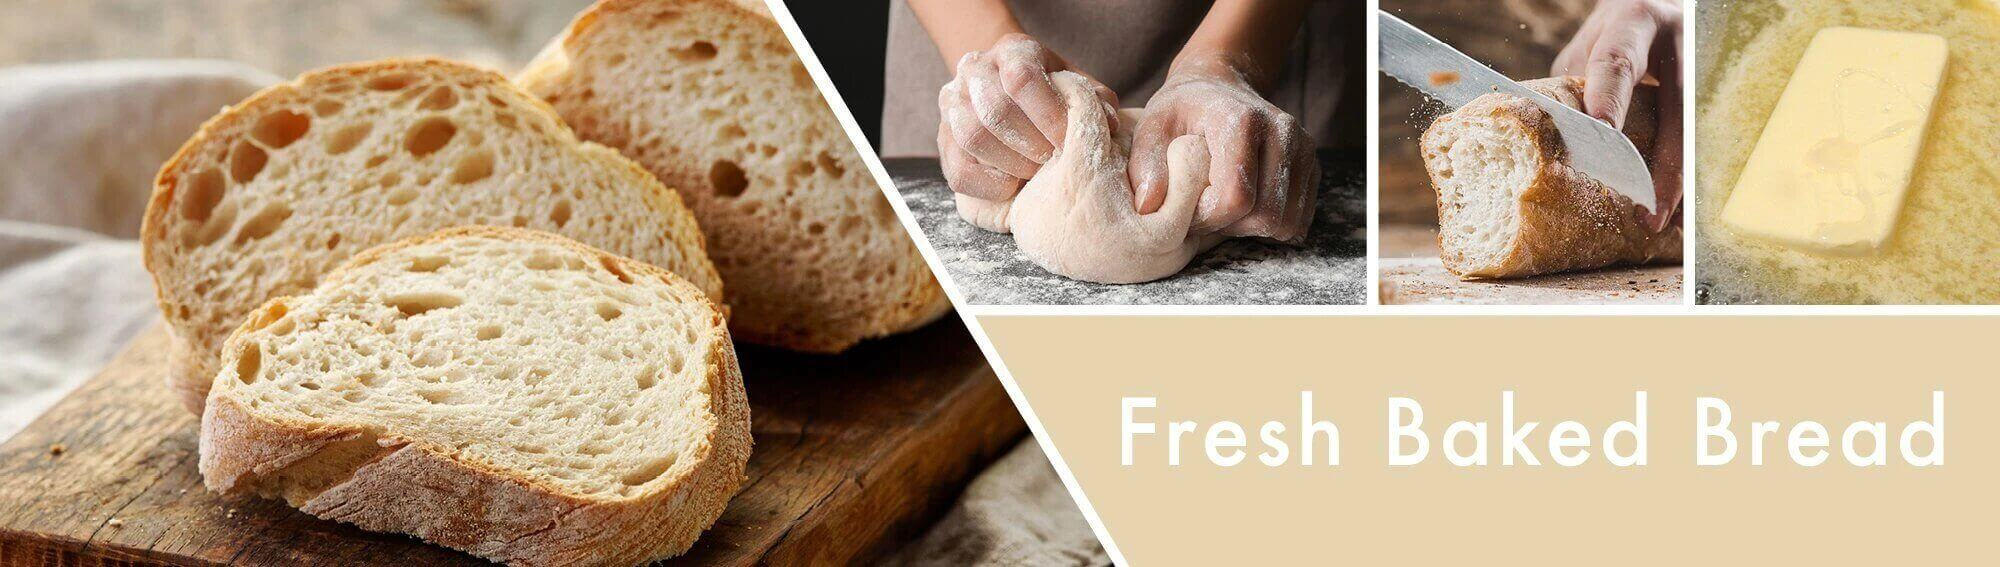 Fresh-Baked-Bread-Candle-Fragrance